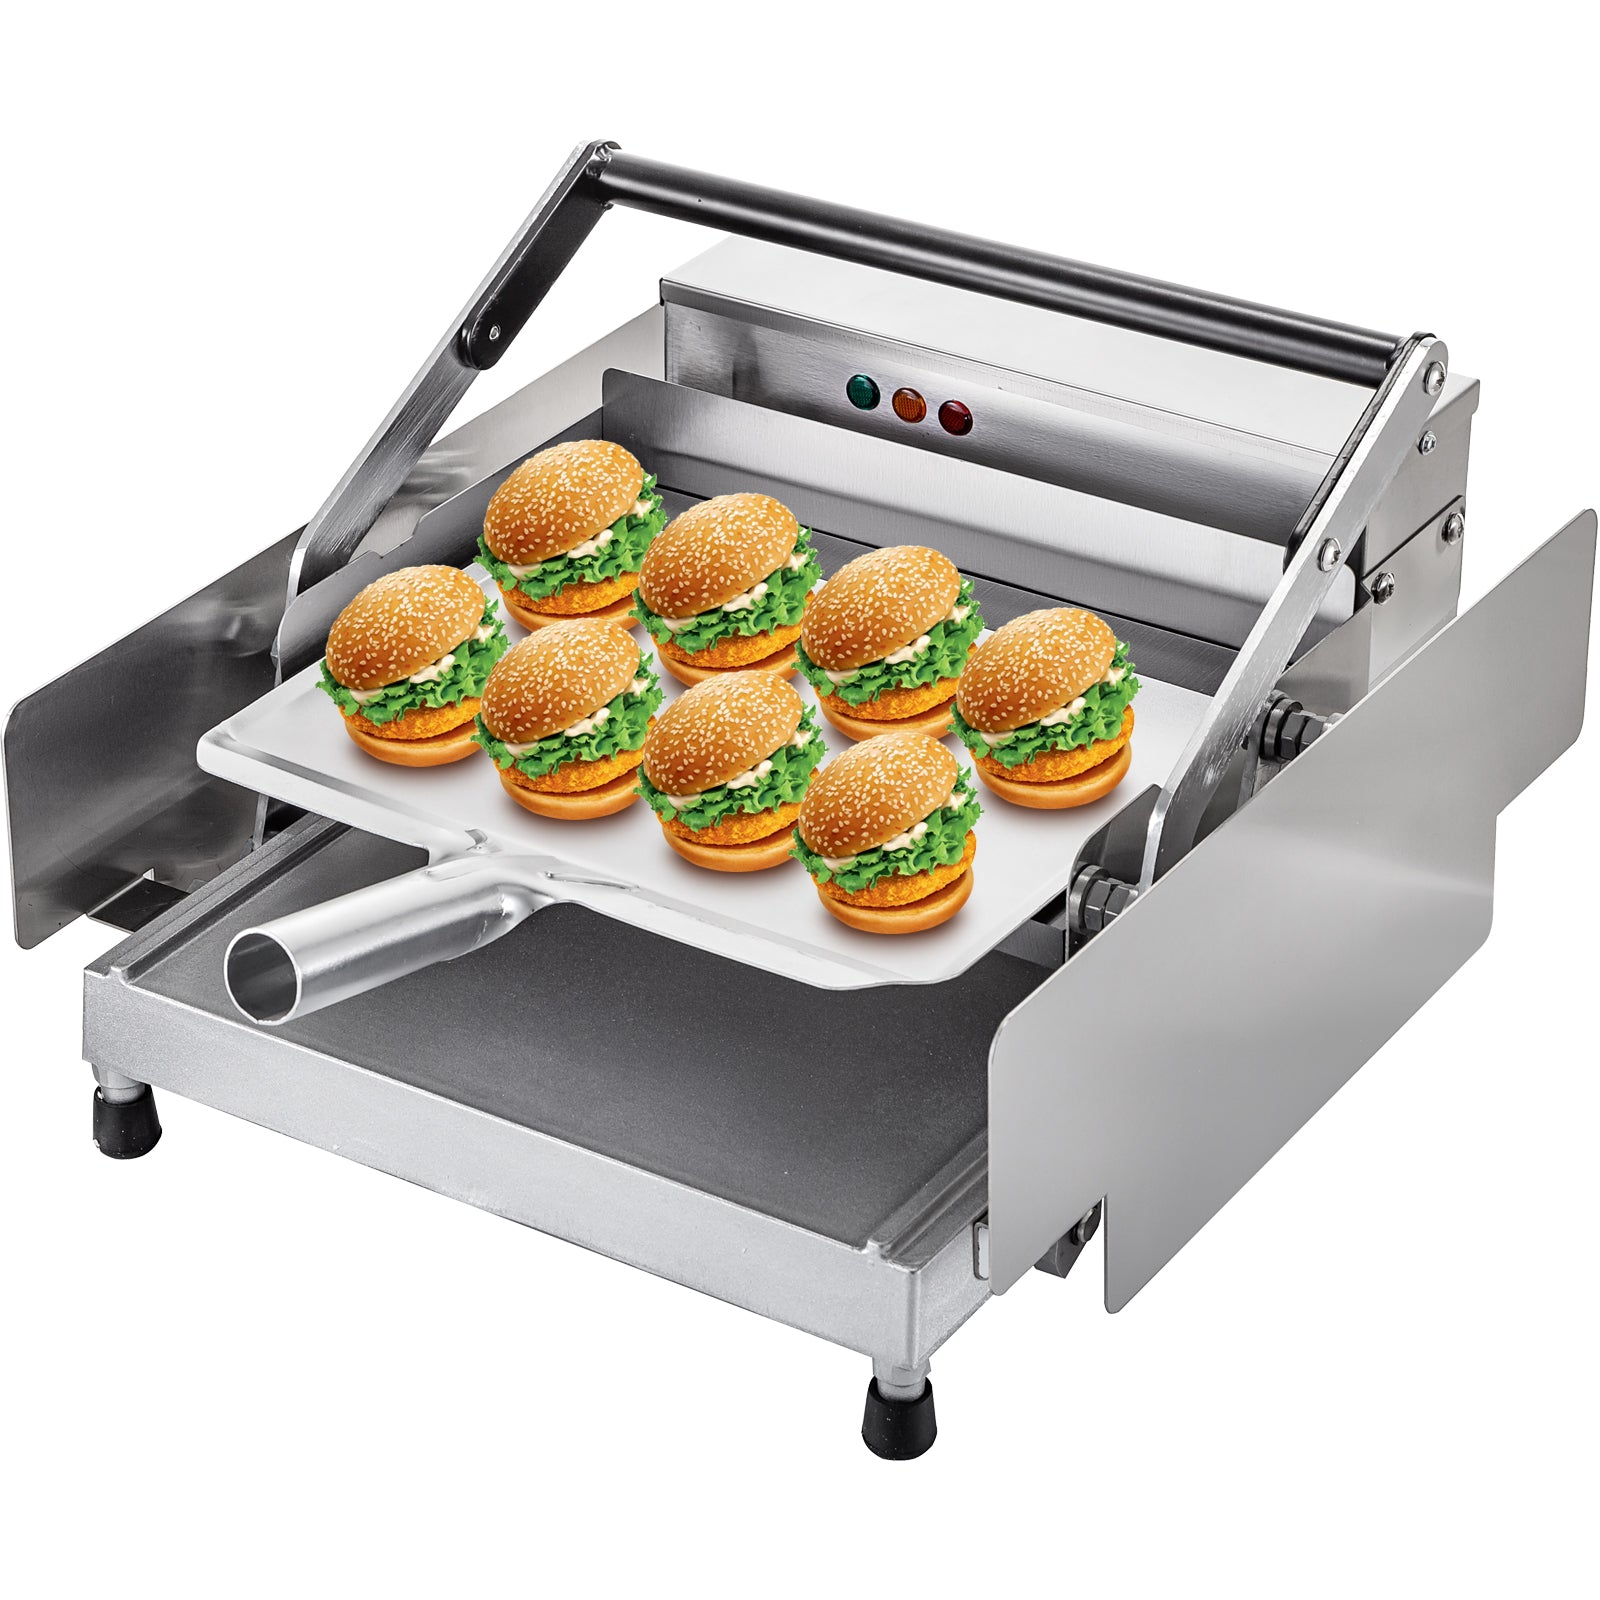 Hamburger Bun Toaster Bun Toaster Commercial Double-plates For 6 Hamburgers